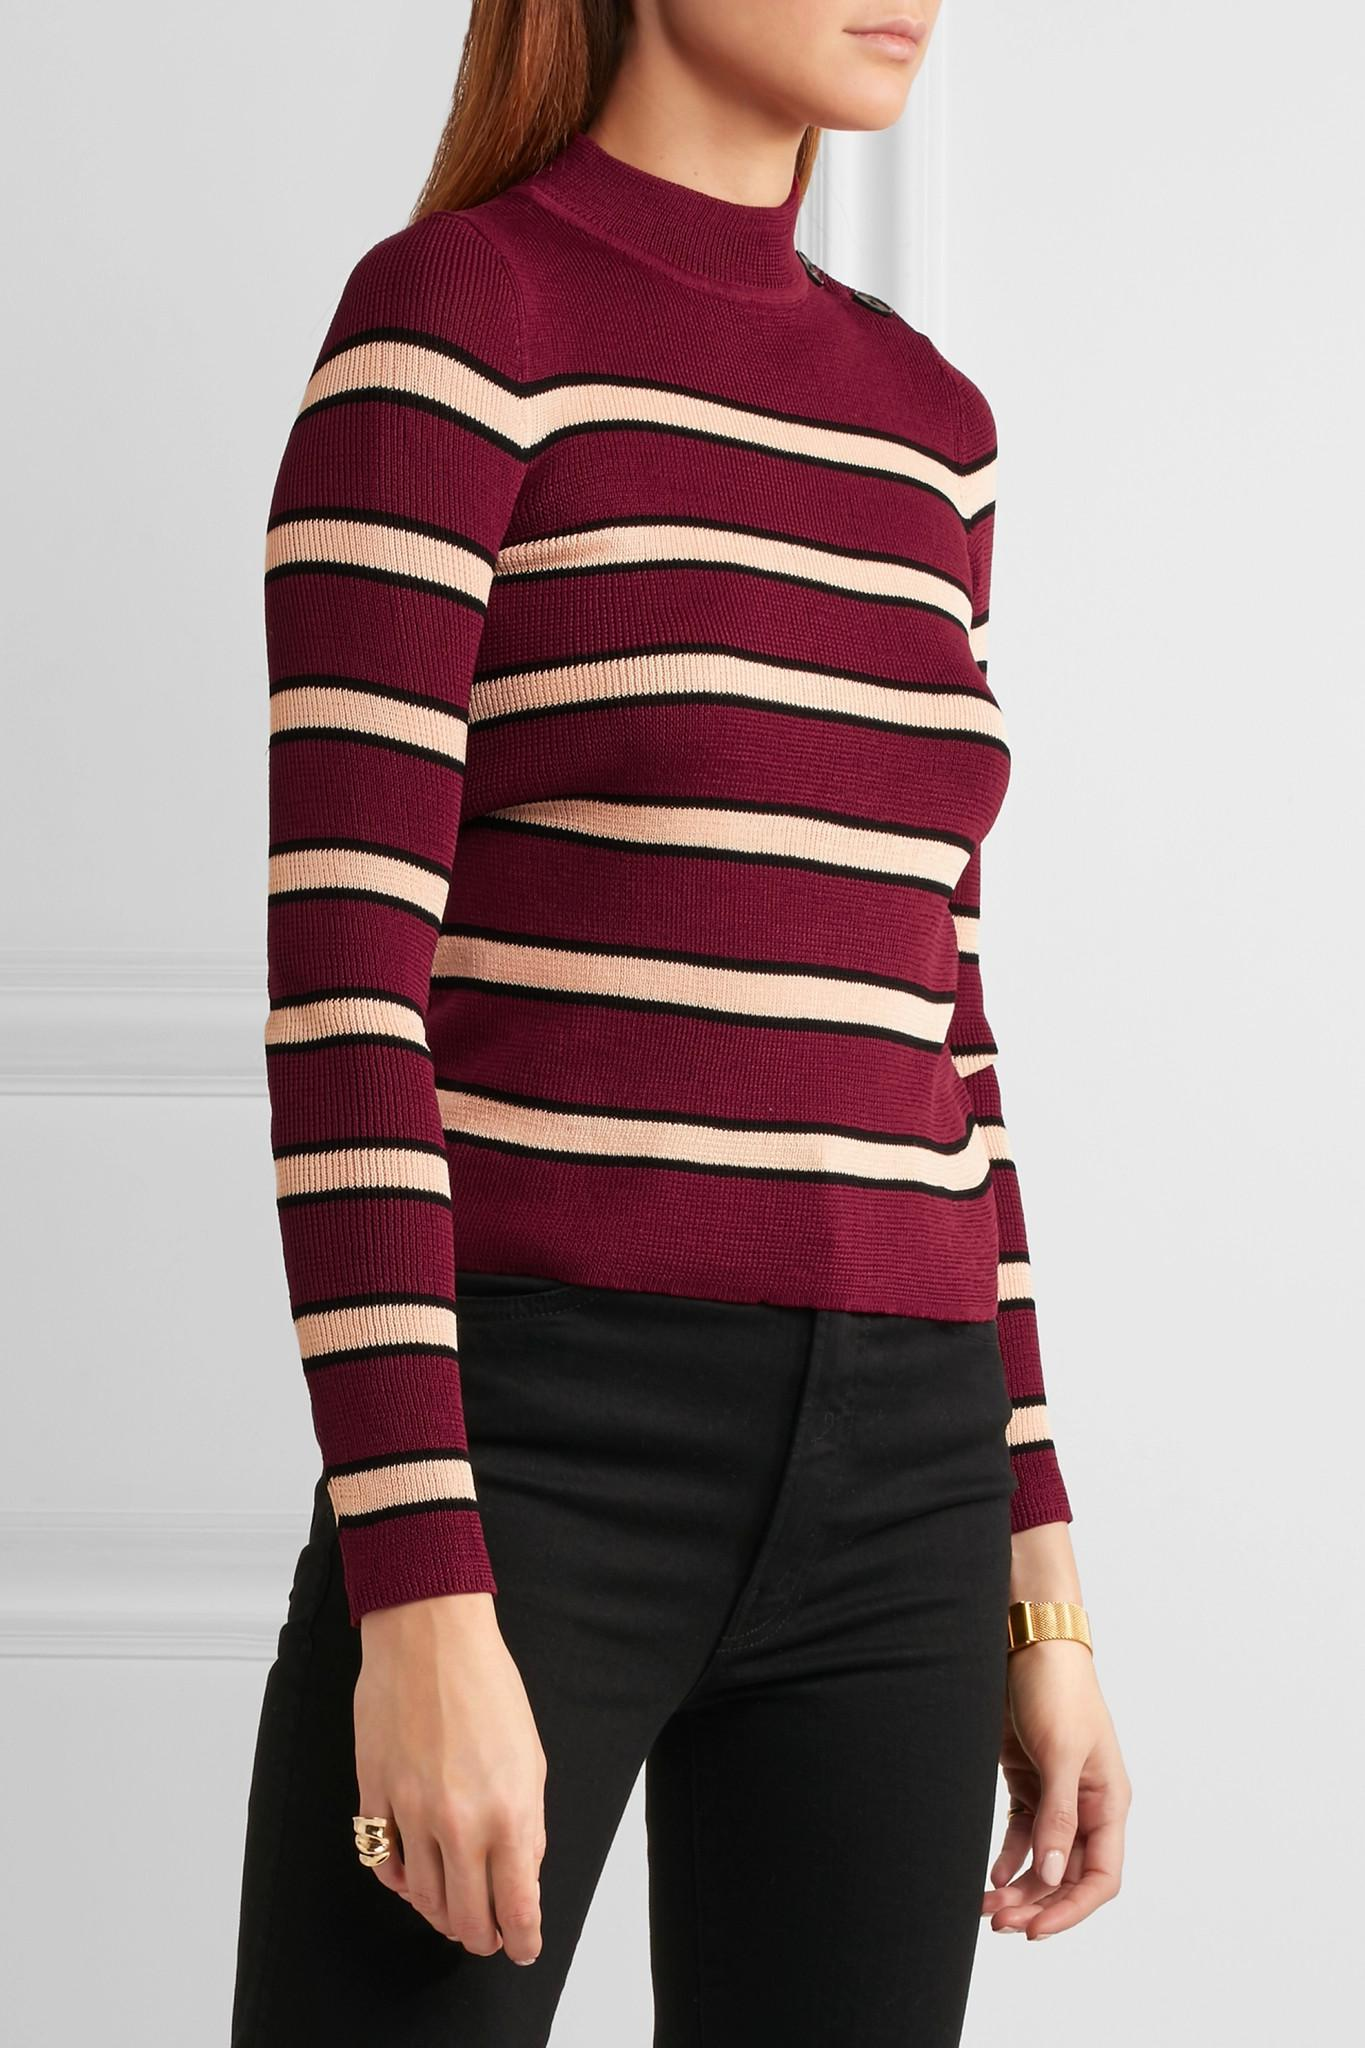 Étoile isabel marant Devona Striped Stretch-knit Sweater in Blue ...